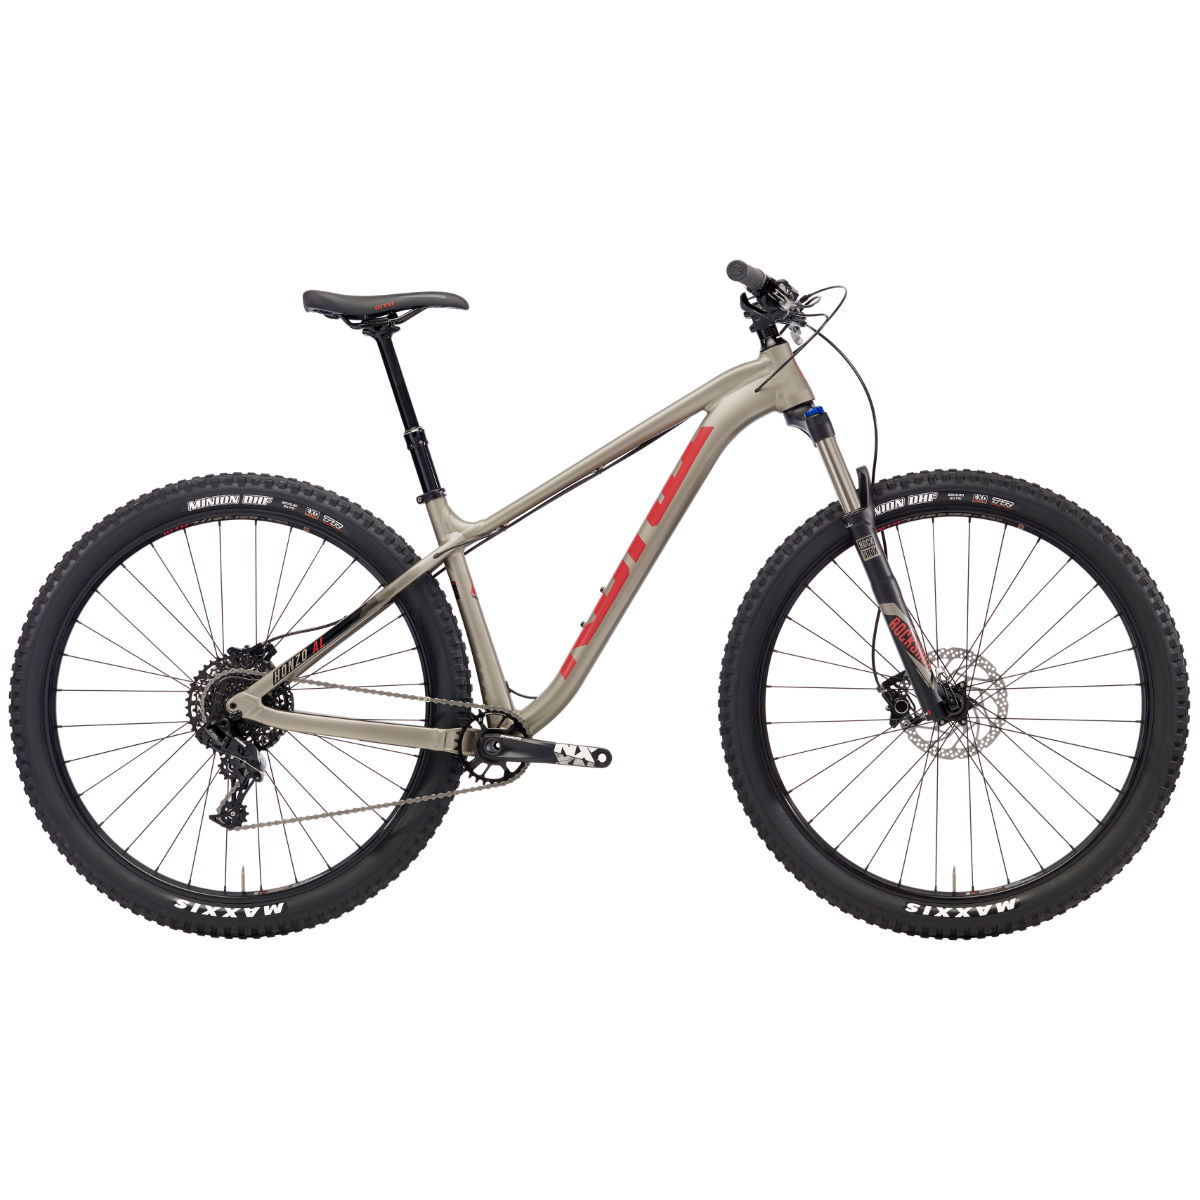 VTT Kona Honzo AL/DR (2018) - Medium Stock Bike Doré